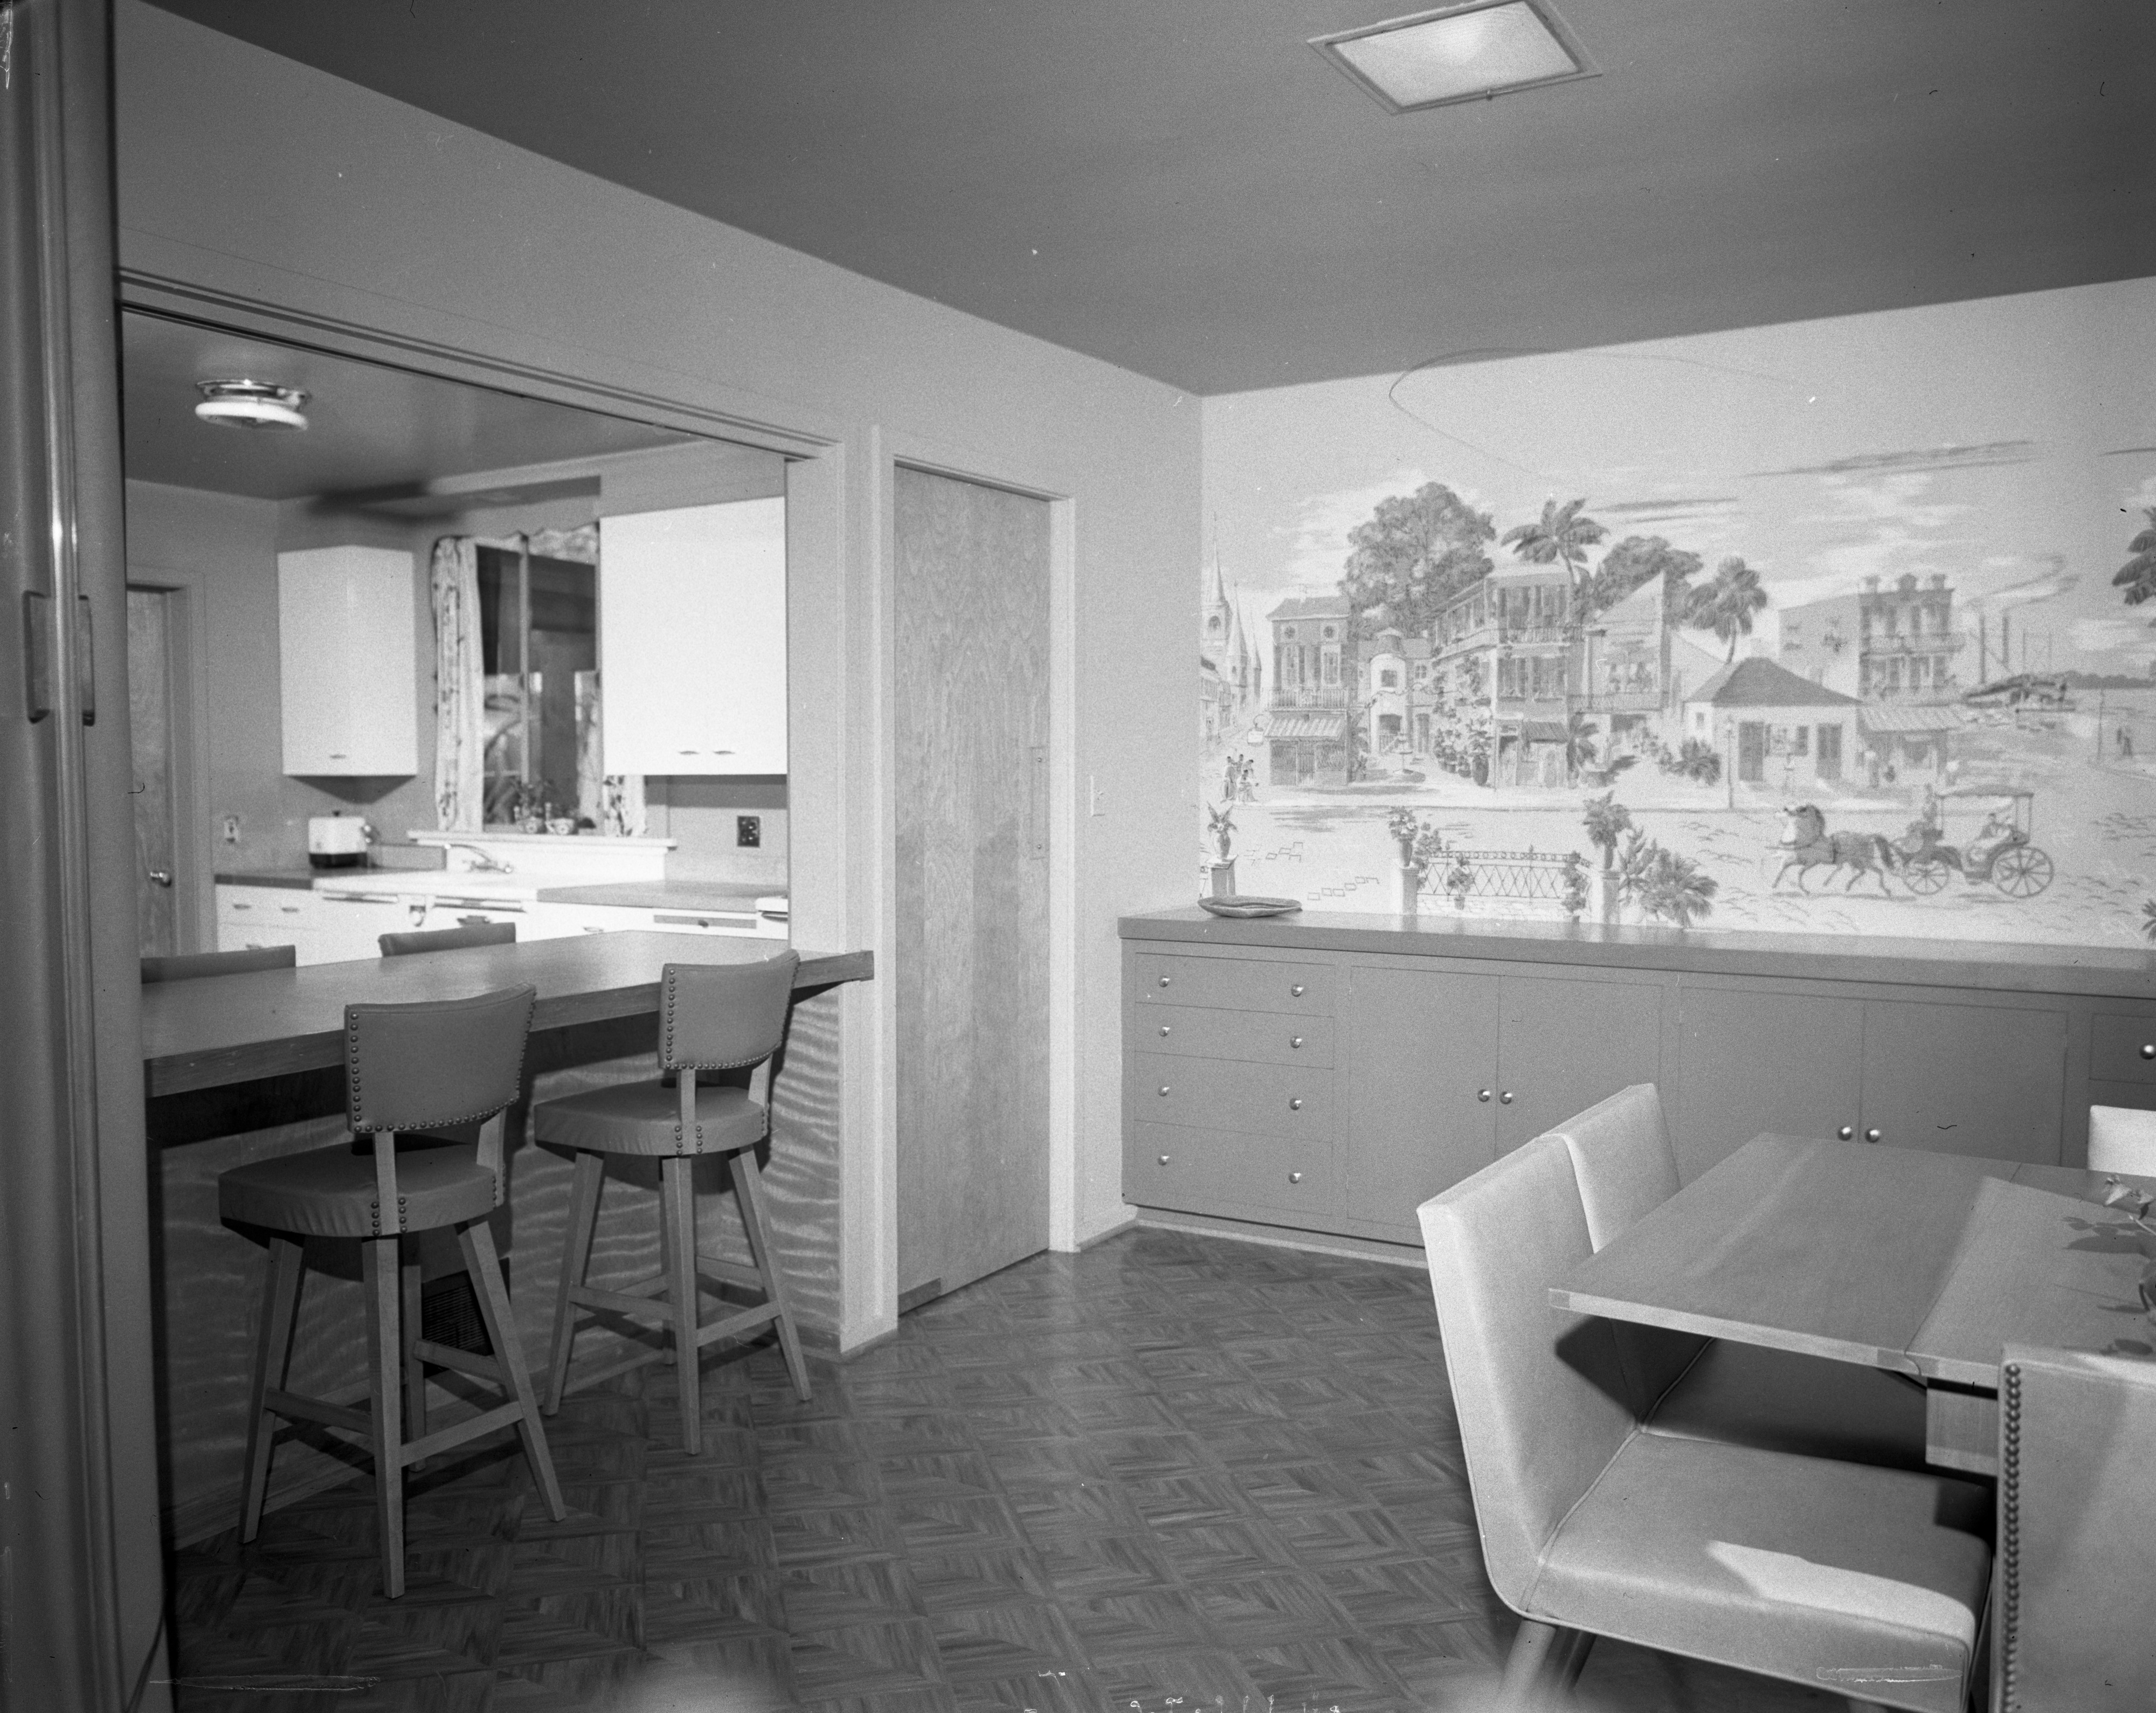 Dining Room In Mary & William Dobson Mid-Century Modern Home On Hermitage Rd., April 1951 image